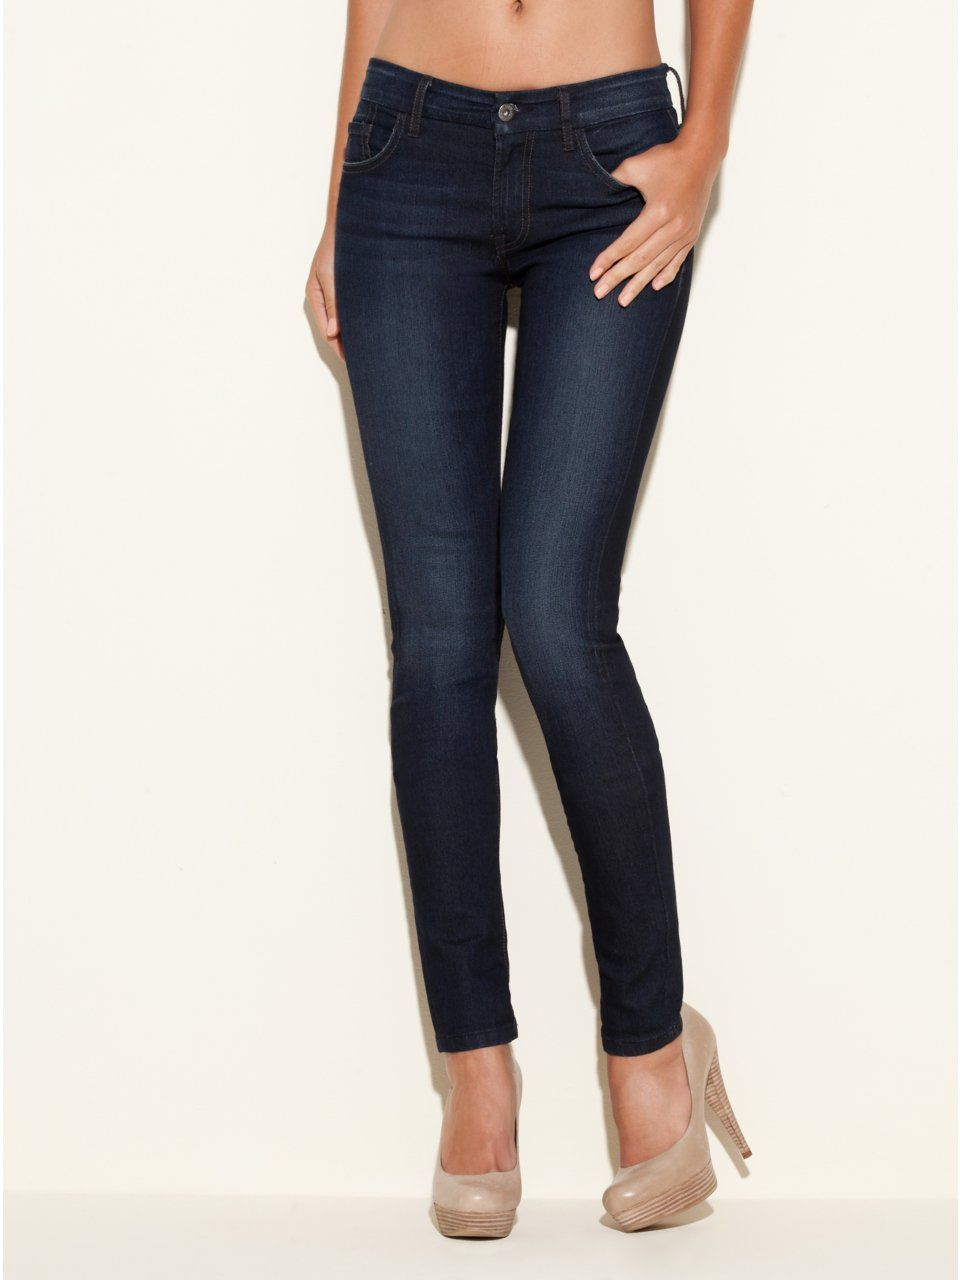 ea18a641bcc30 GUESS Sophia Skinny Curvy Jeans in Upright Was, UPRIGHT WASH (30 / RG)